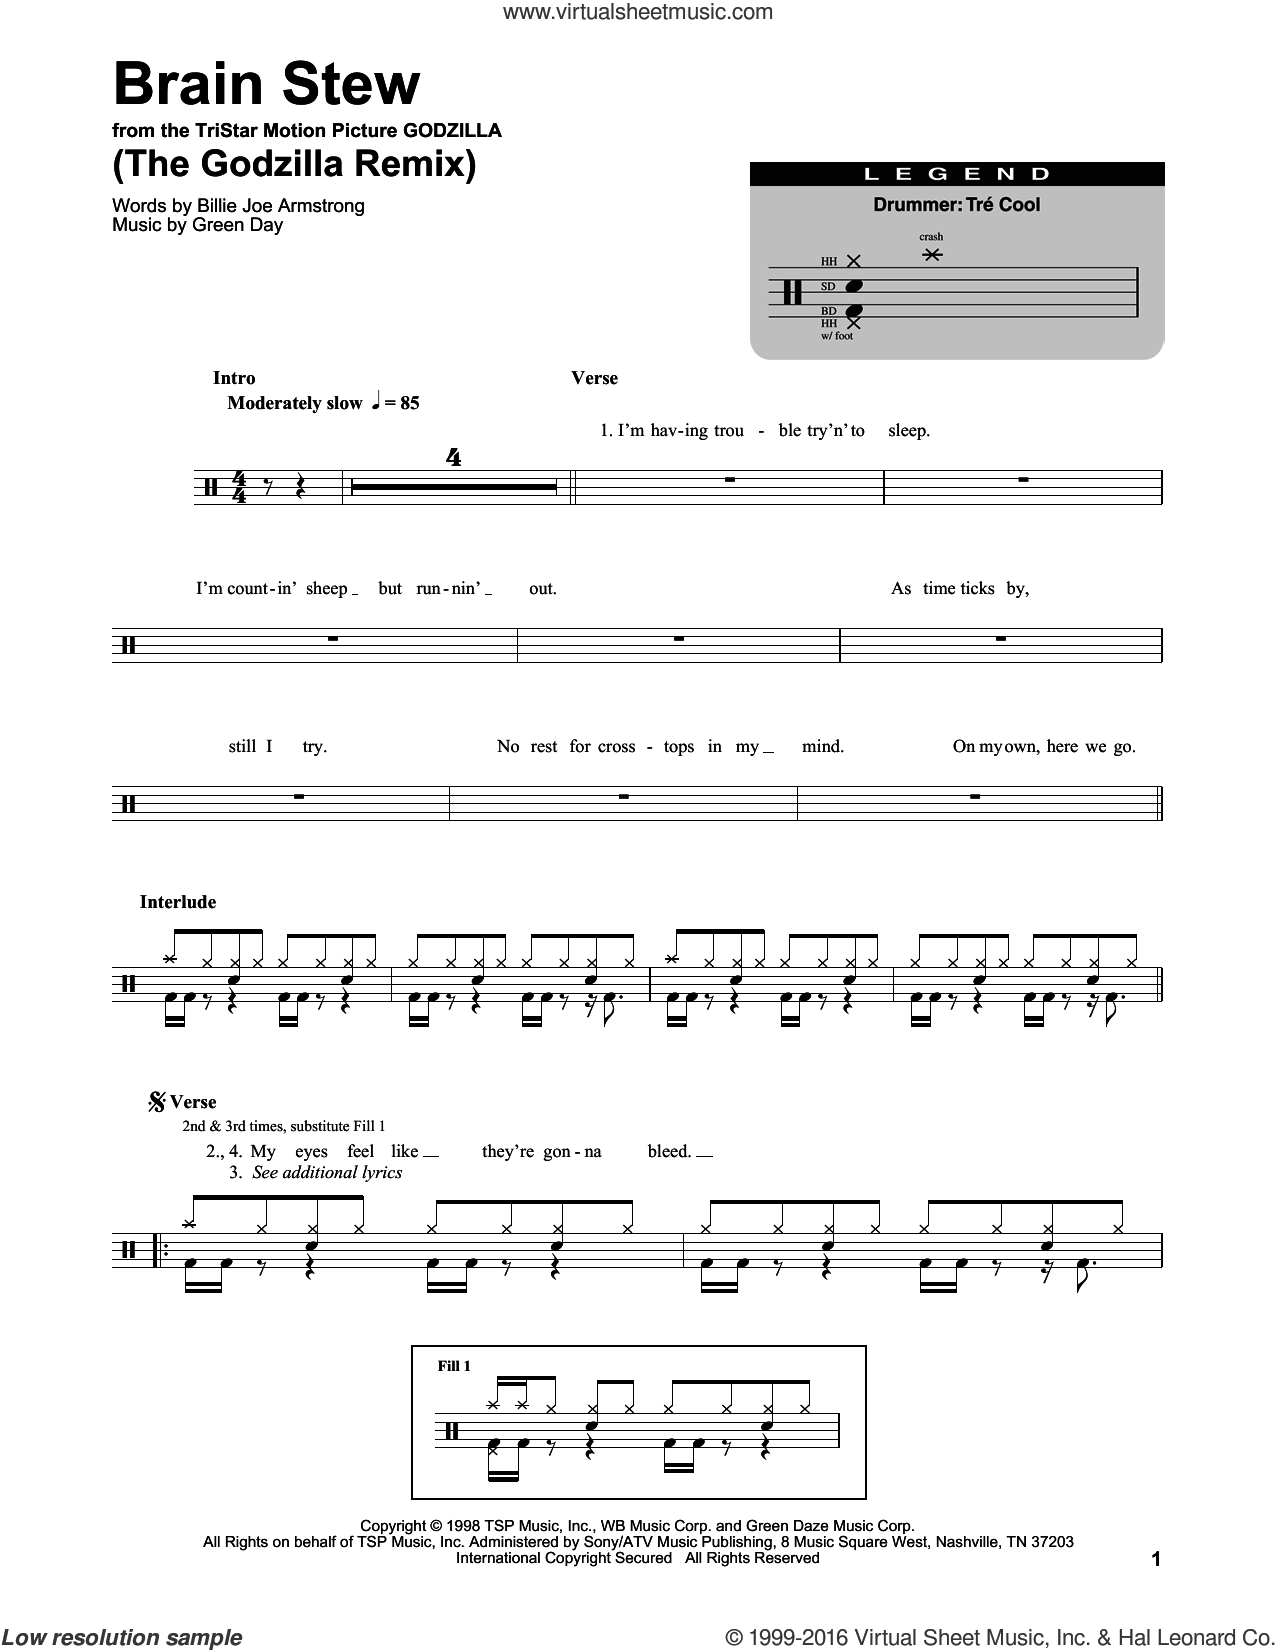 Brain Stew (The Godzilla Remix) sheet music for drums by Green Day and Billie Joe Armstrong, intermediate drums. Score Image Preview.